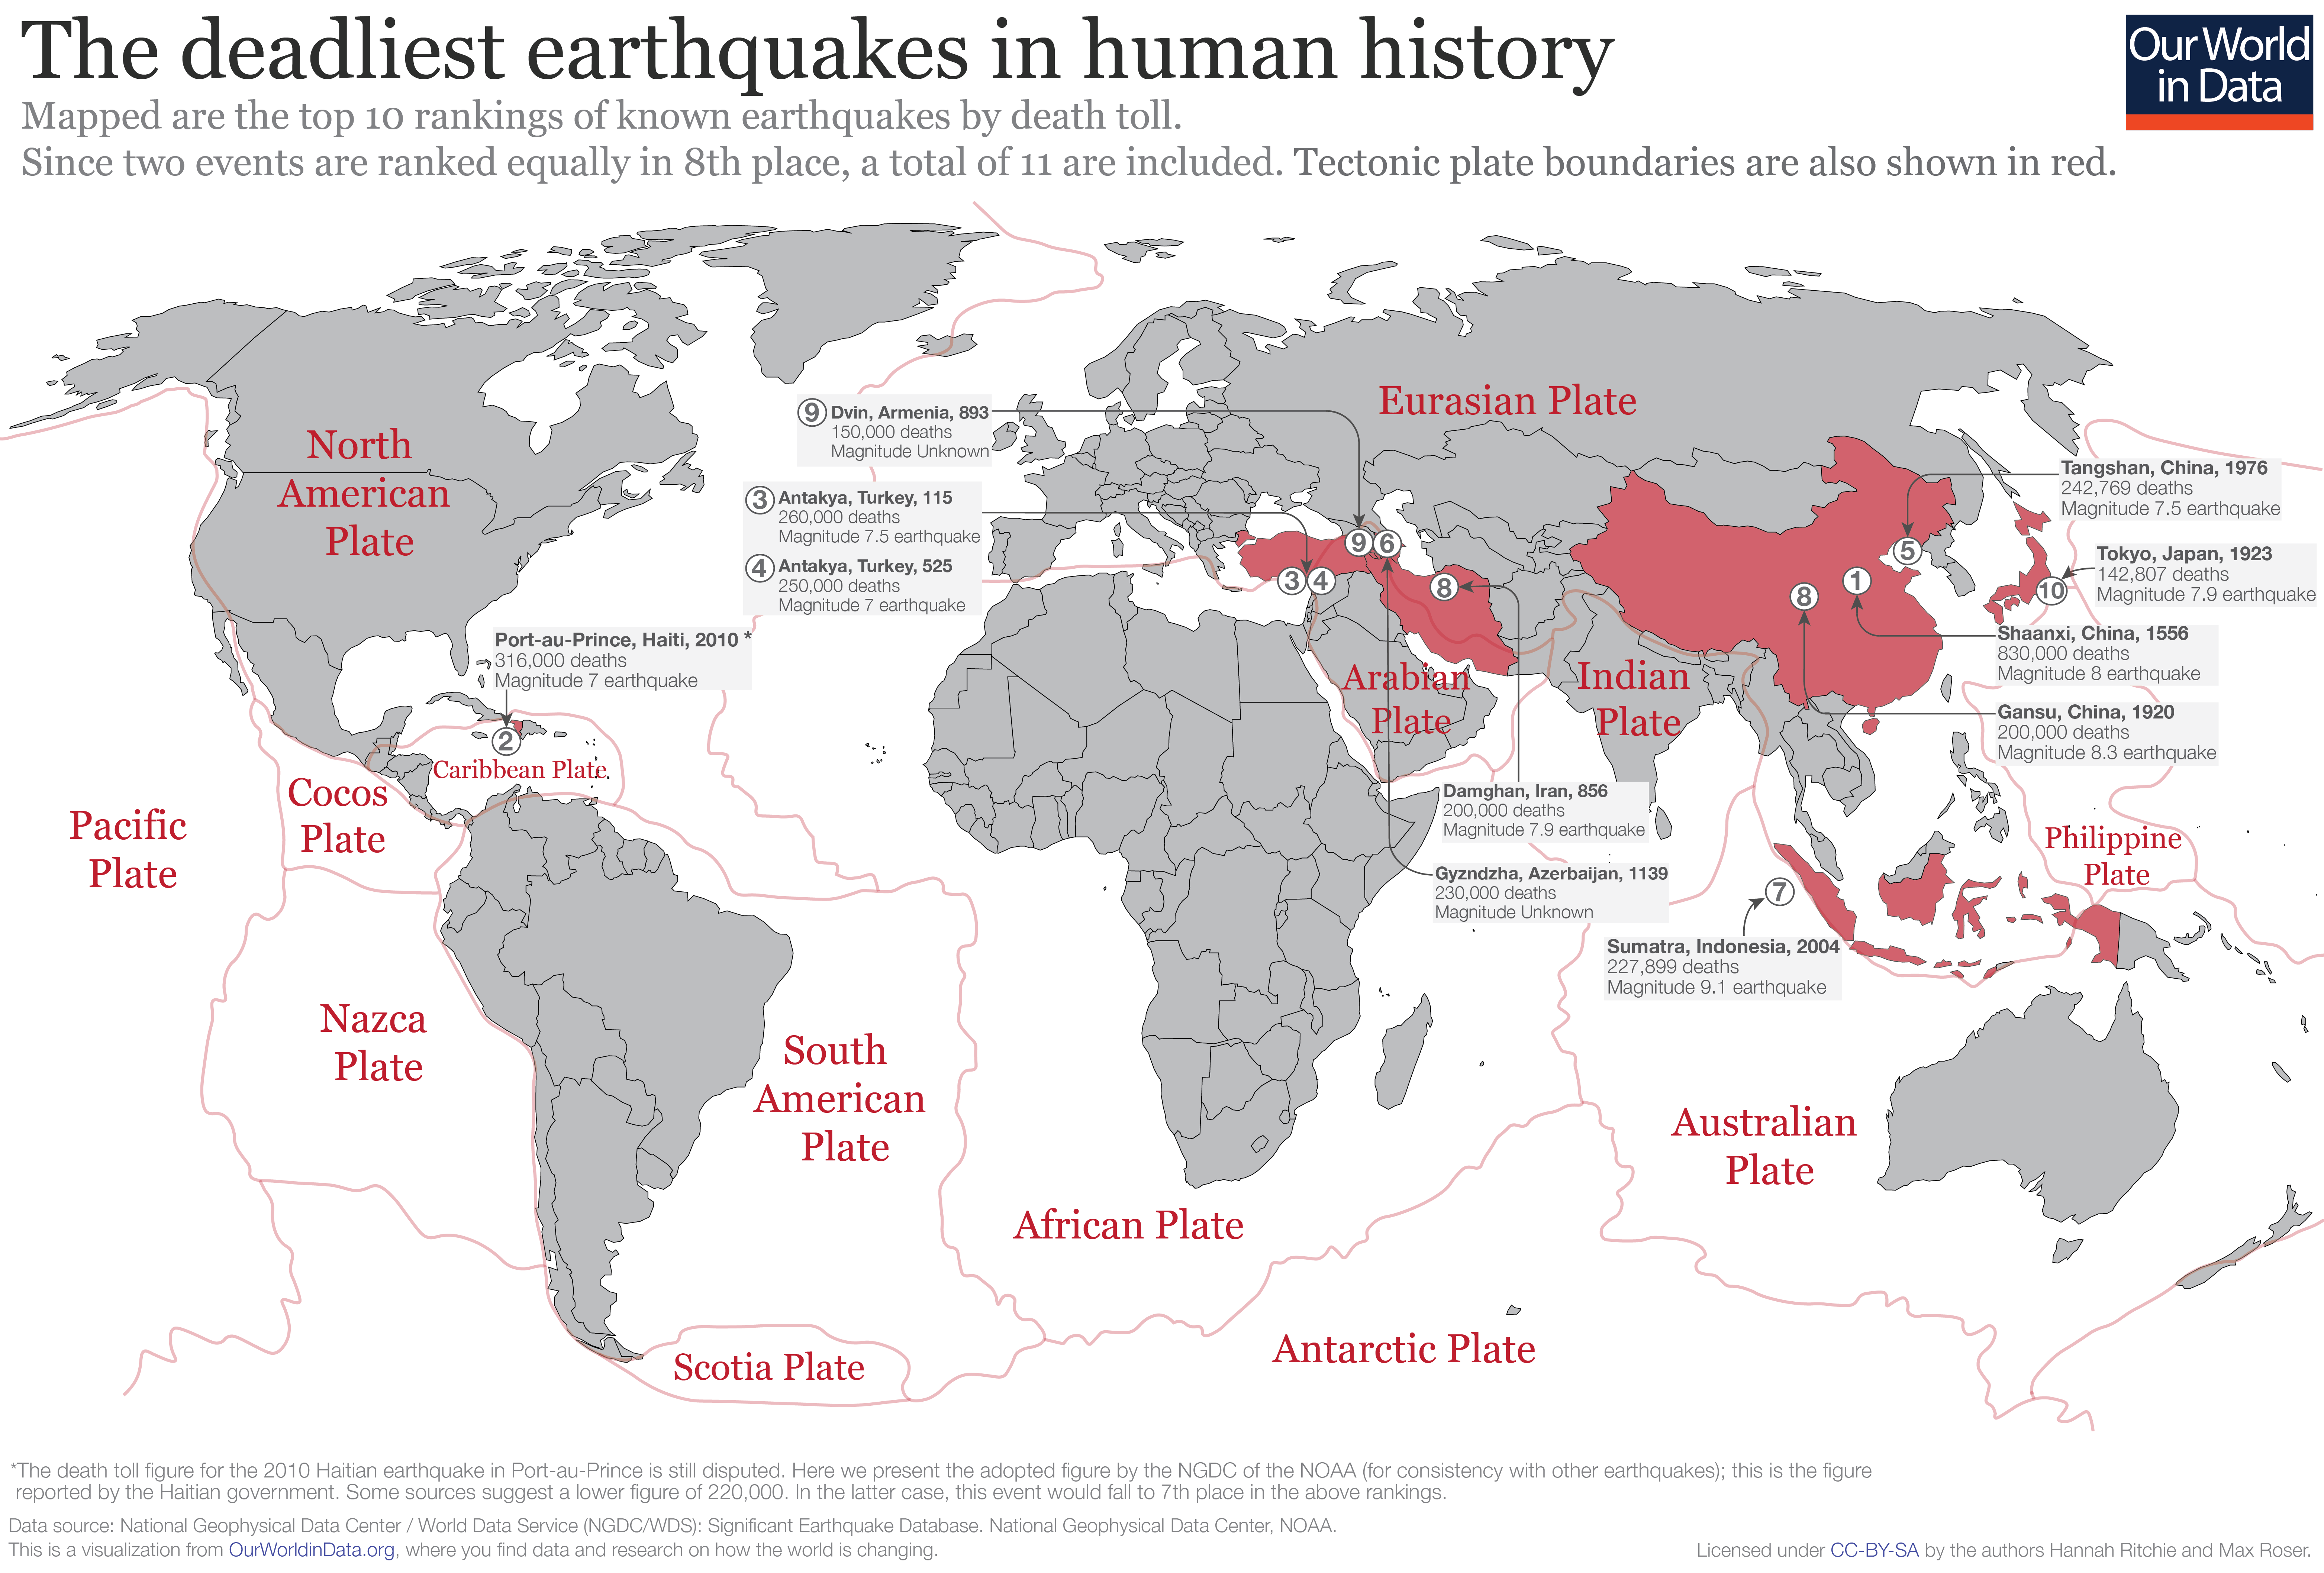 What were the world's deadliest earthquakes? - Our World in Data Earthquake Risks Australia Map on earthquake results, landslide risk map, wildfires map, volcano risk map, natural disaster risk map, earthquake home, water contamination risk map, risk assessment map, terrorism risk map, fire risk map, star wars risk map, cyclone risk map, hail risk map, nuclear risk map, drought risk map, mass wasting risk map, earthquake safety, tsunami risk map, tornado risk map, lightning risk map,